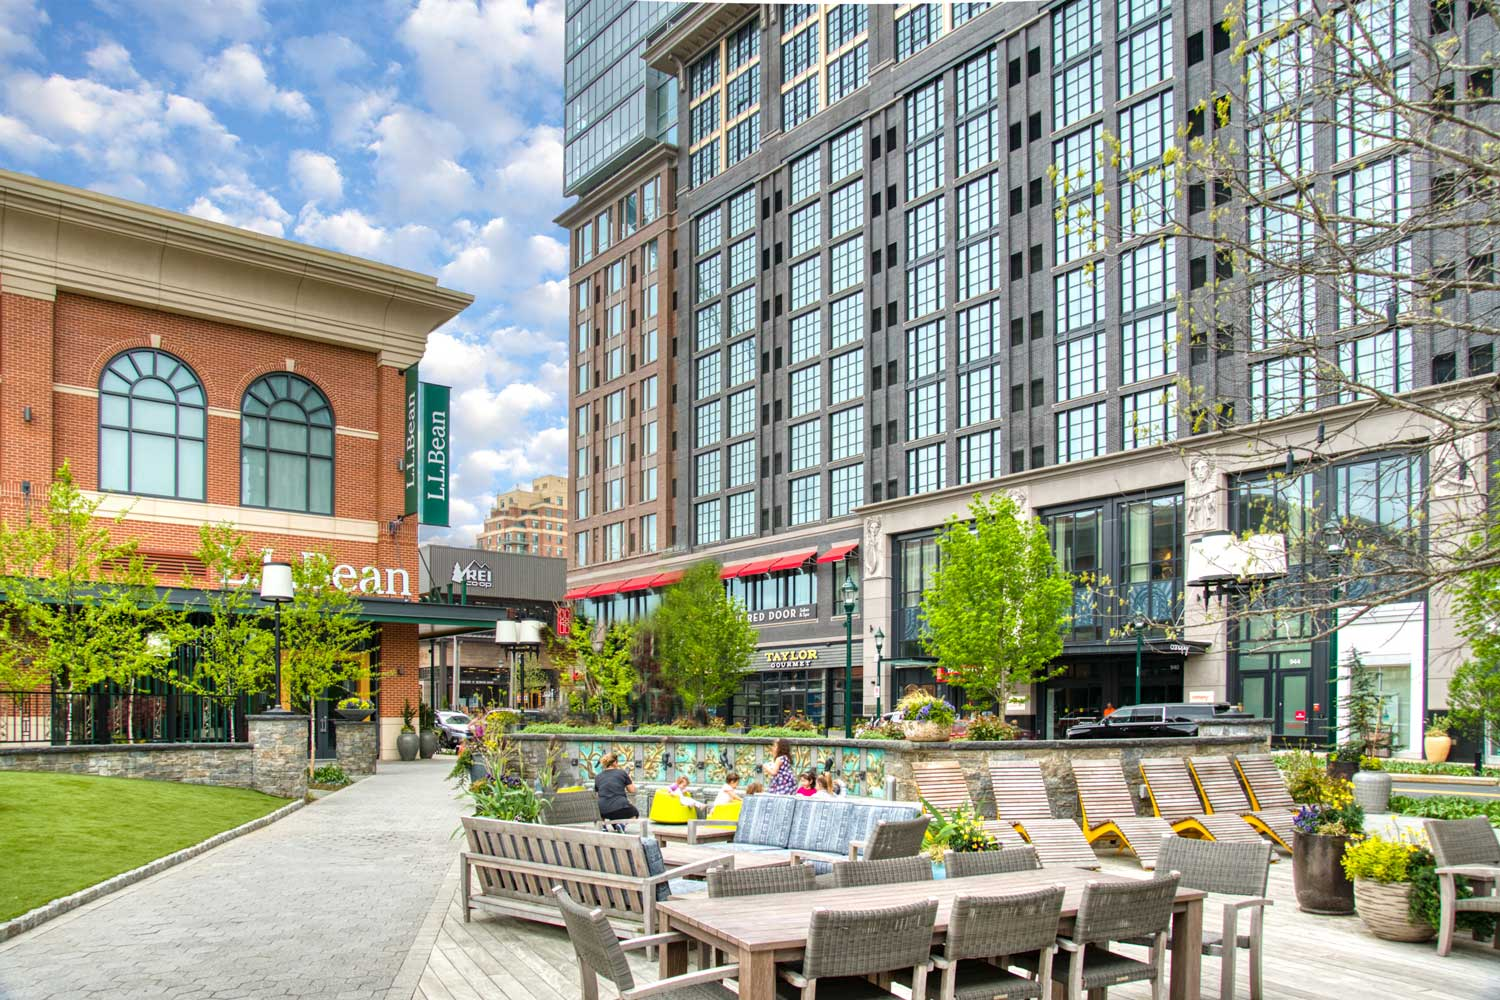 Pike & Rose is 5 minutes from Village Square West Apartments in North Bethesda, MD